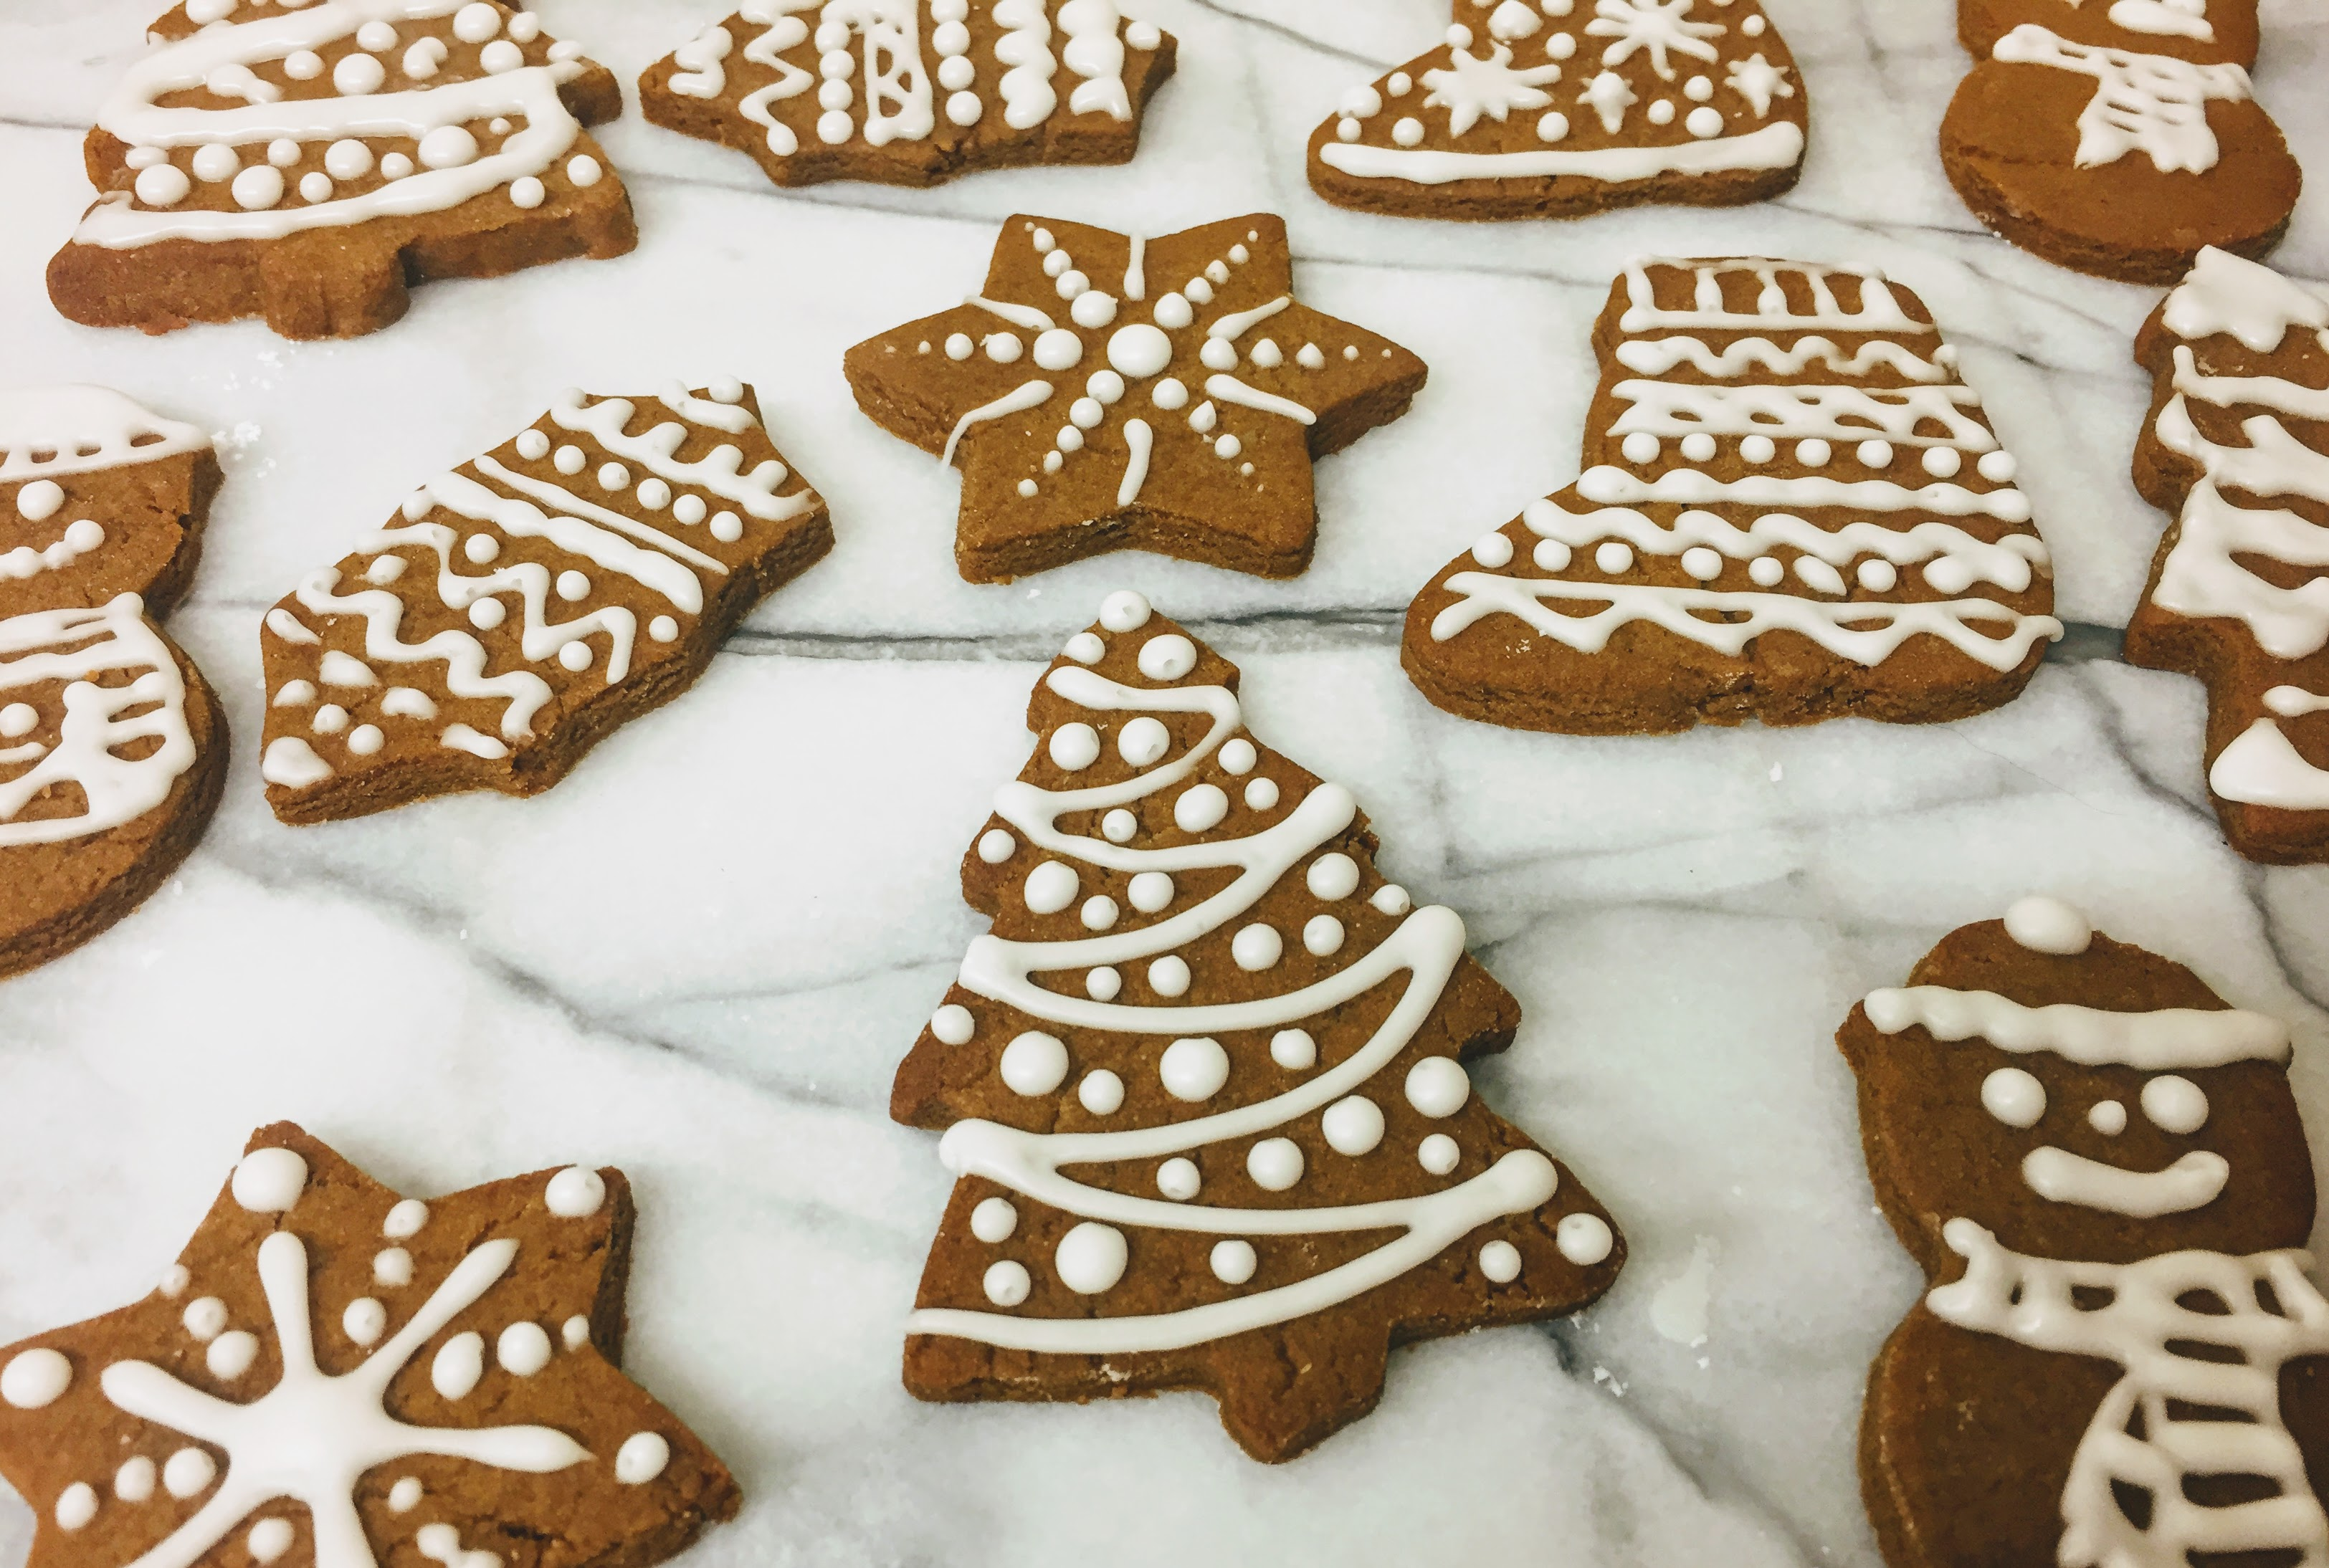 A side view of the gingerbread biscuits, which are about half a centimeter thick. A christmas tree is at the front of the picture with icing piped like tinsel and baubles.